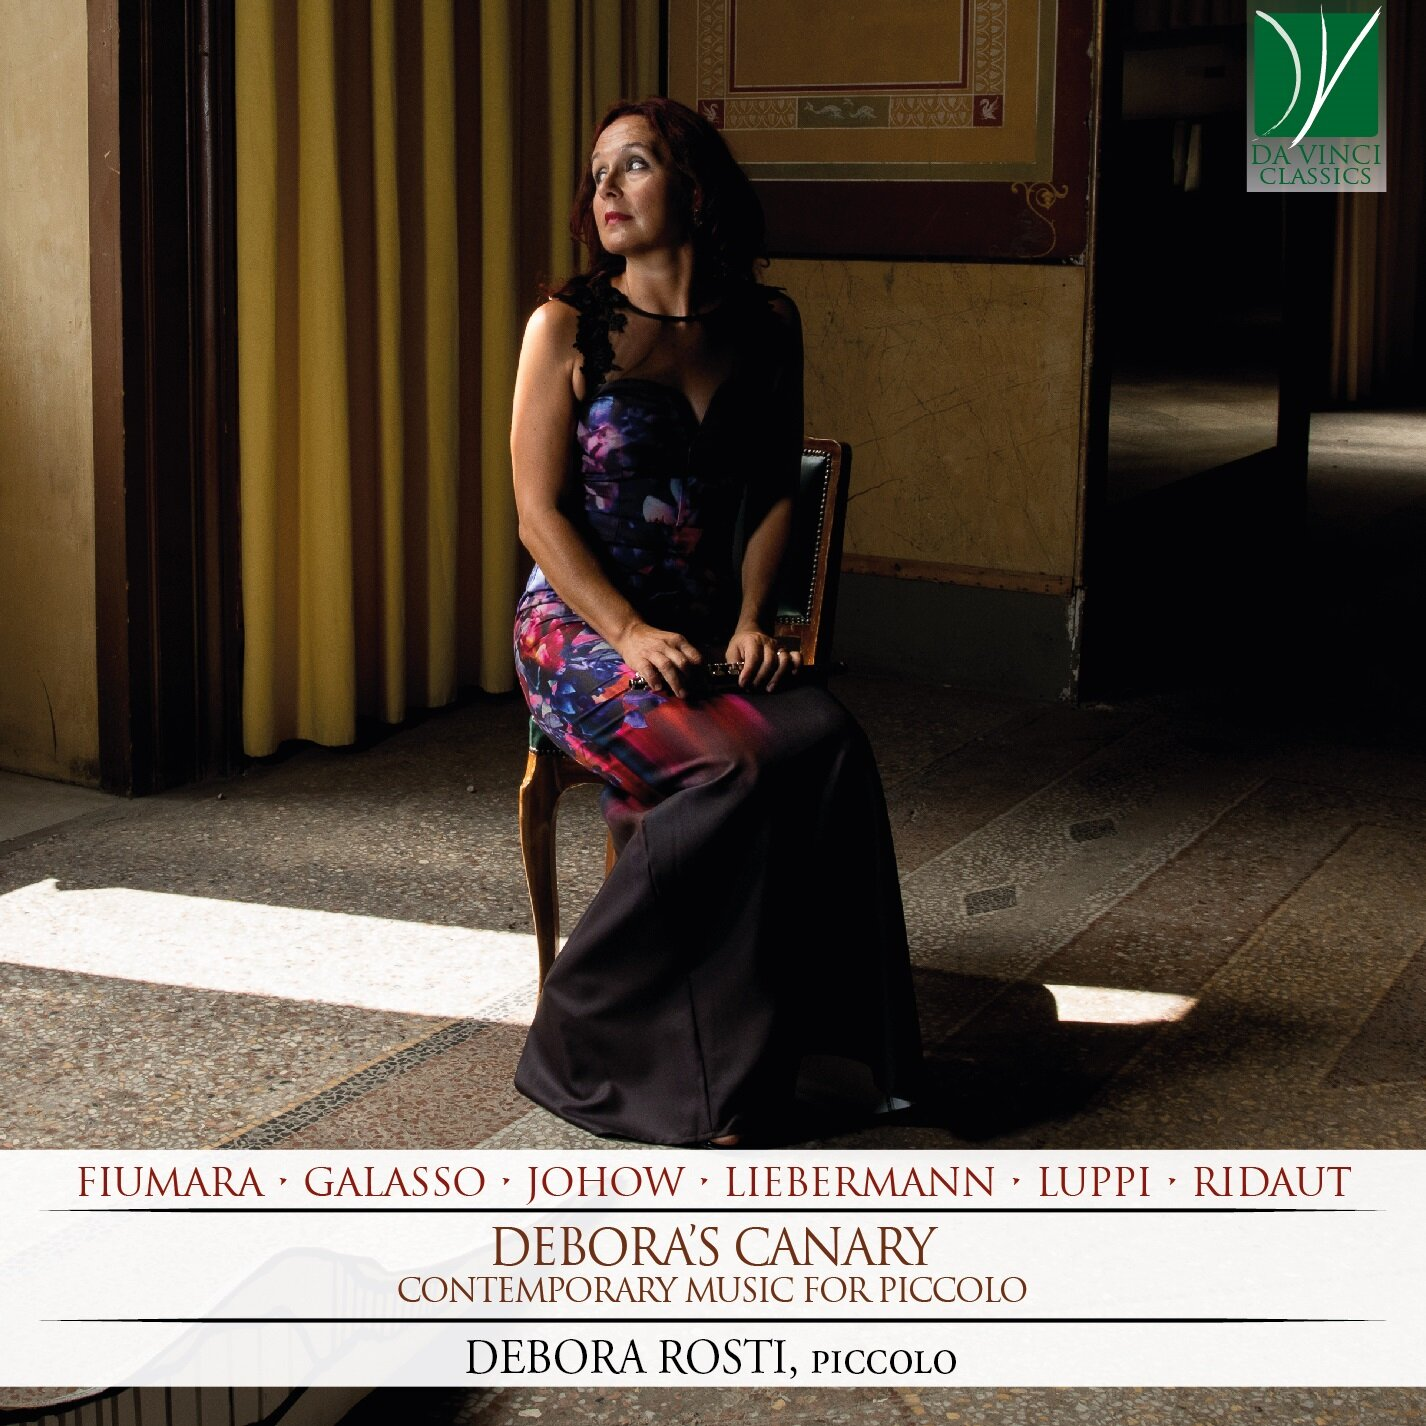 New Recording on Da Vinci Classics - (Oct. 6, 2019) Deborah Rosti's recording of Liebermann's Eight Pieces for Piccolo Op.59 has been released on the Da Vinci Classics label on an album of 20th century works for solo piccolo entitled Debora's Canary. The album also contains works by Fiumara, Galasso, Johow, Luppi and Ridalt. You can order the cd from the Da Vinci Classics website here.